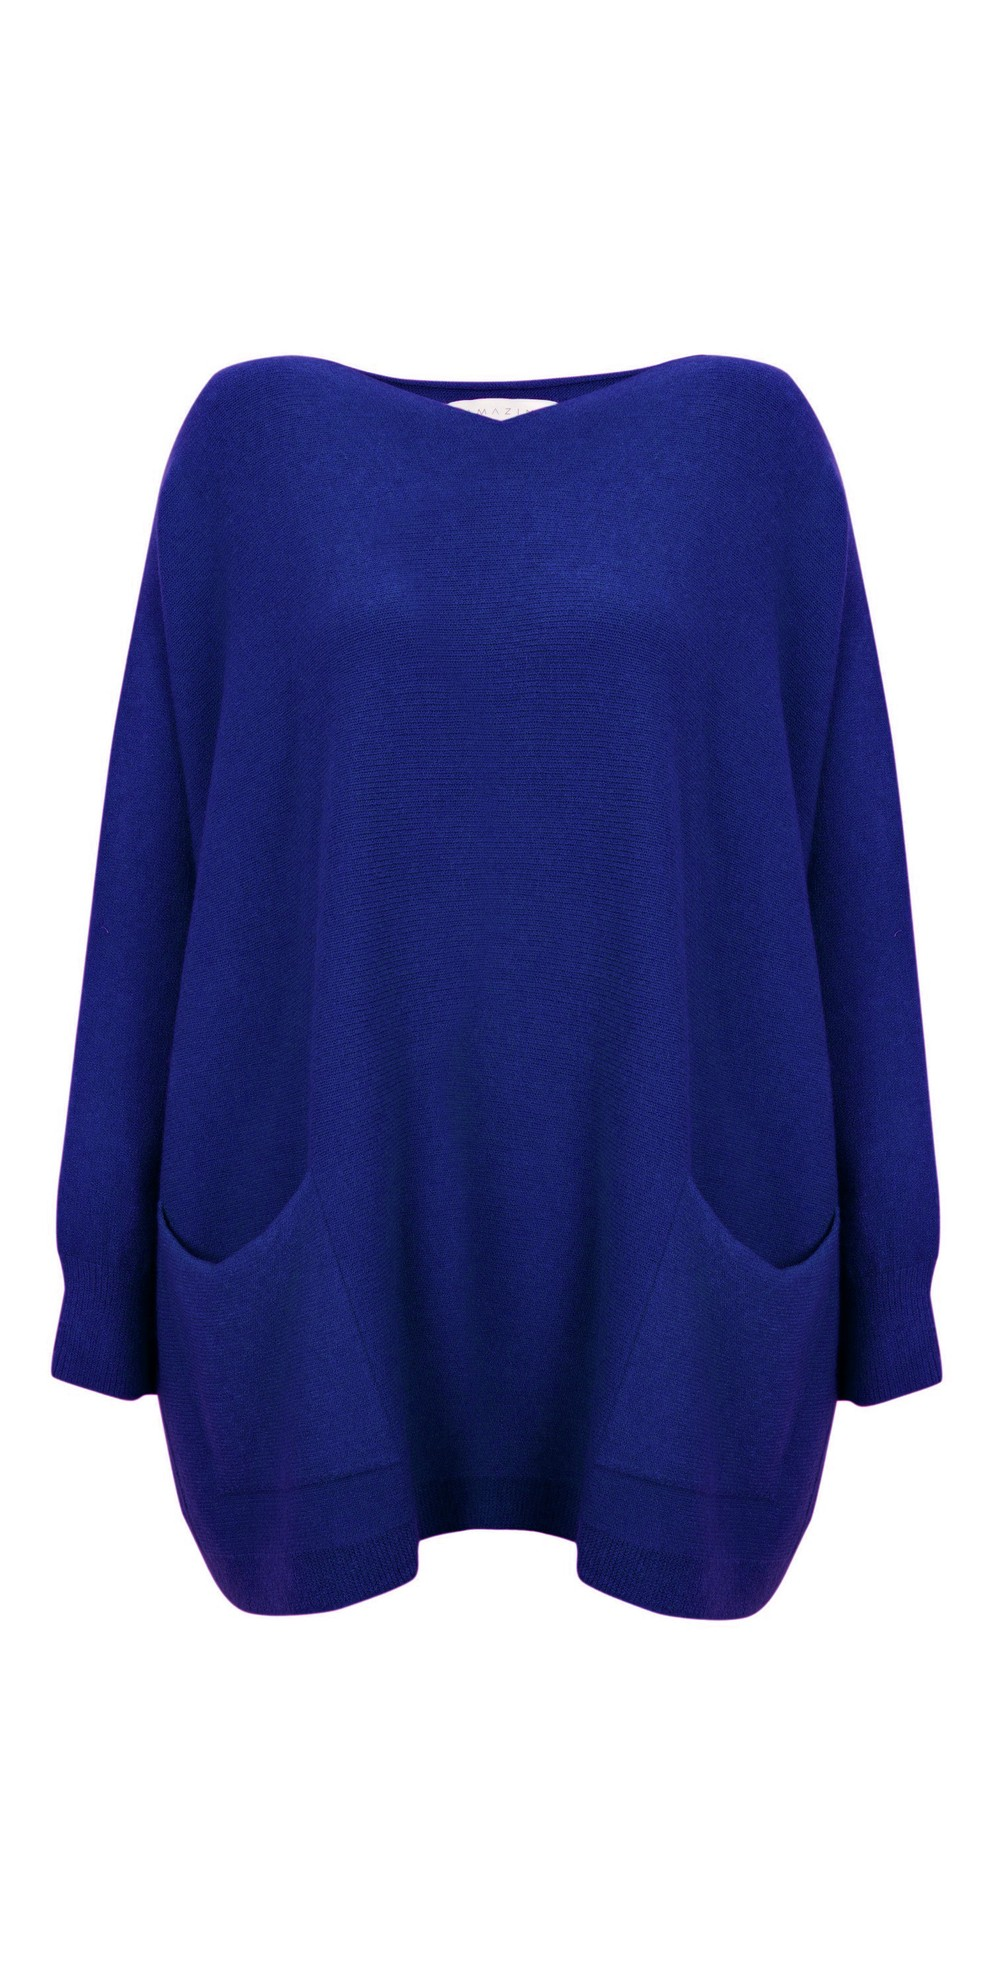 Caryf X Round Neck Oversized Jumper main image